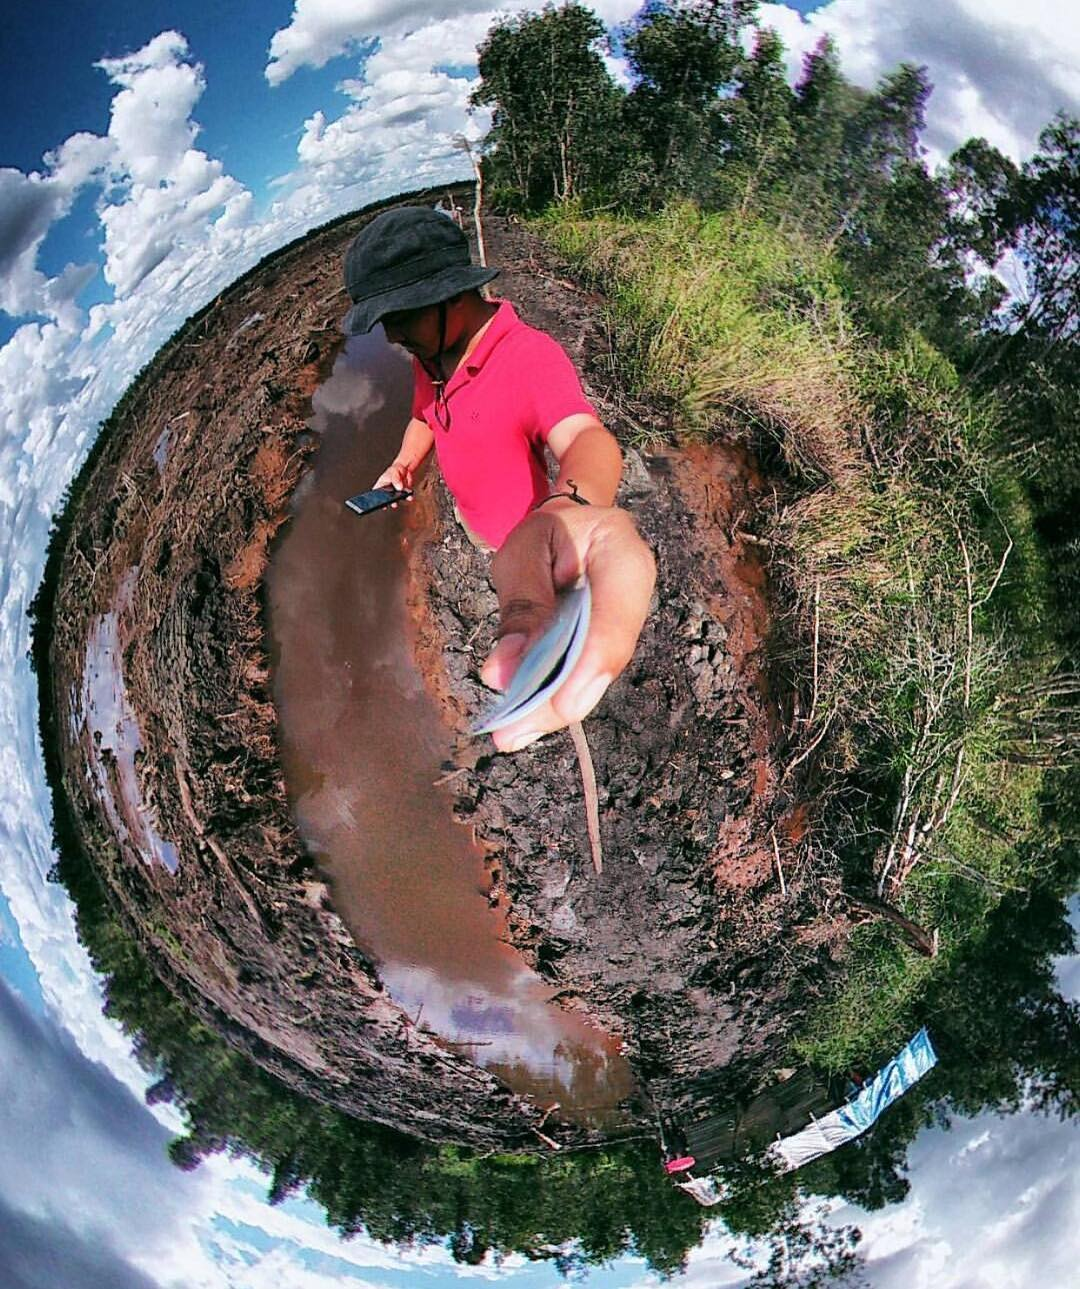 We may be a little late to the #tinyplanet party, but we're just glad we made it. Shout out to @pangkakena for capturing #deforestation in such a powerful way ✌️️ #Cuipo #SaveRainforest #noPLANetB #StopTheChop #Indonesia